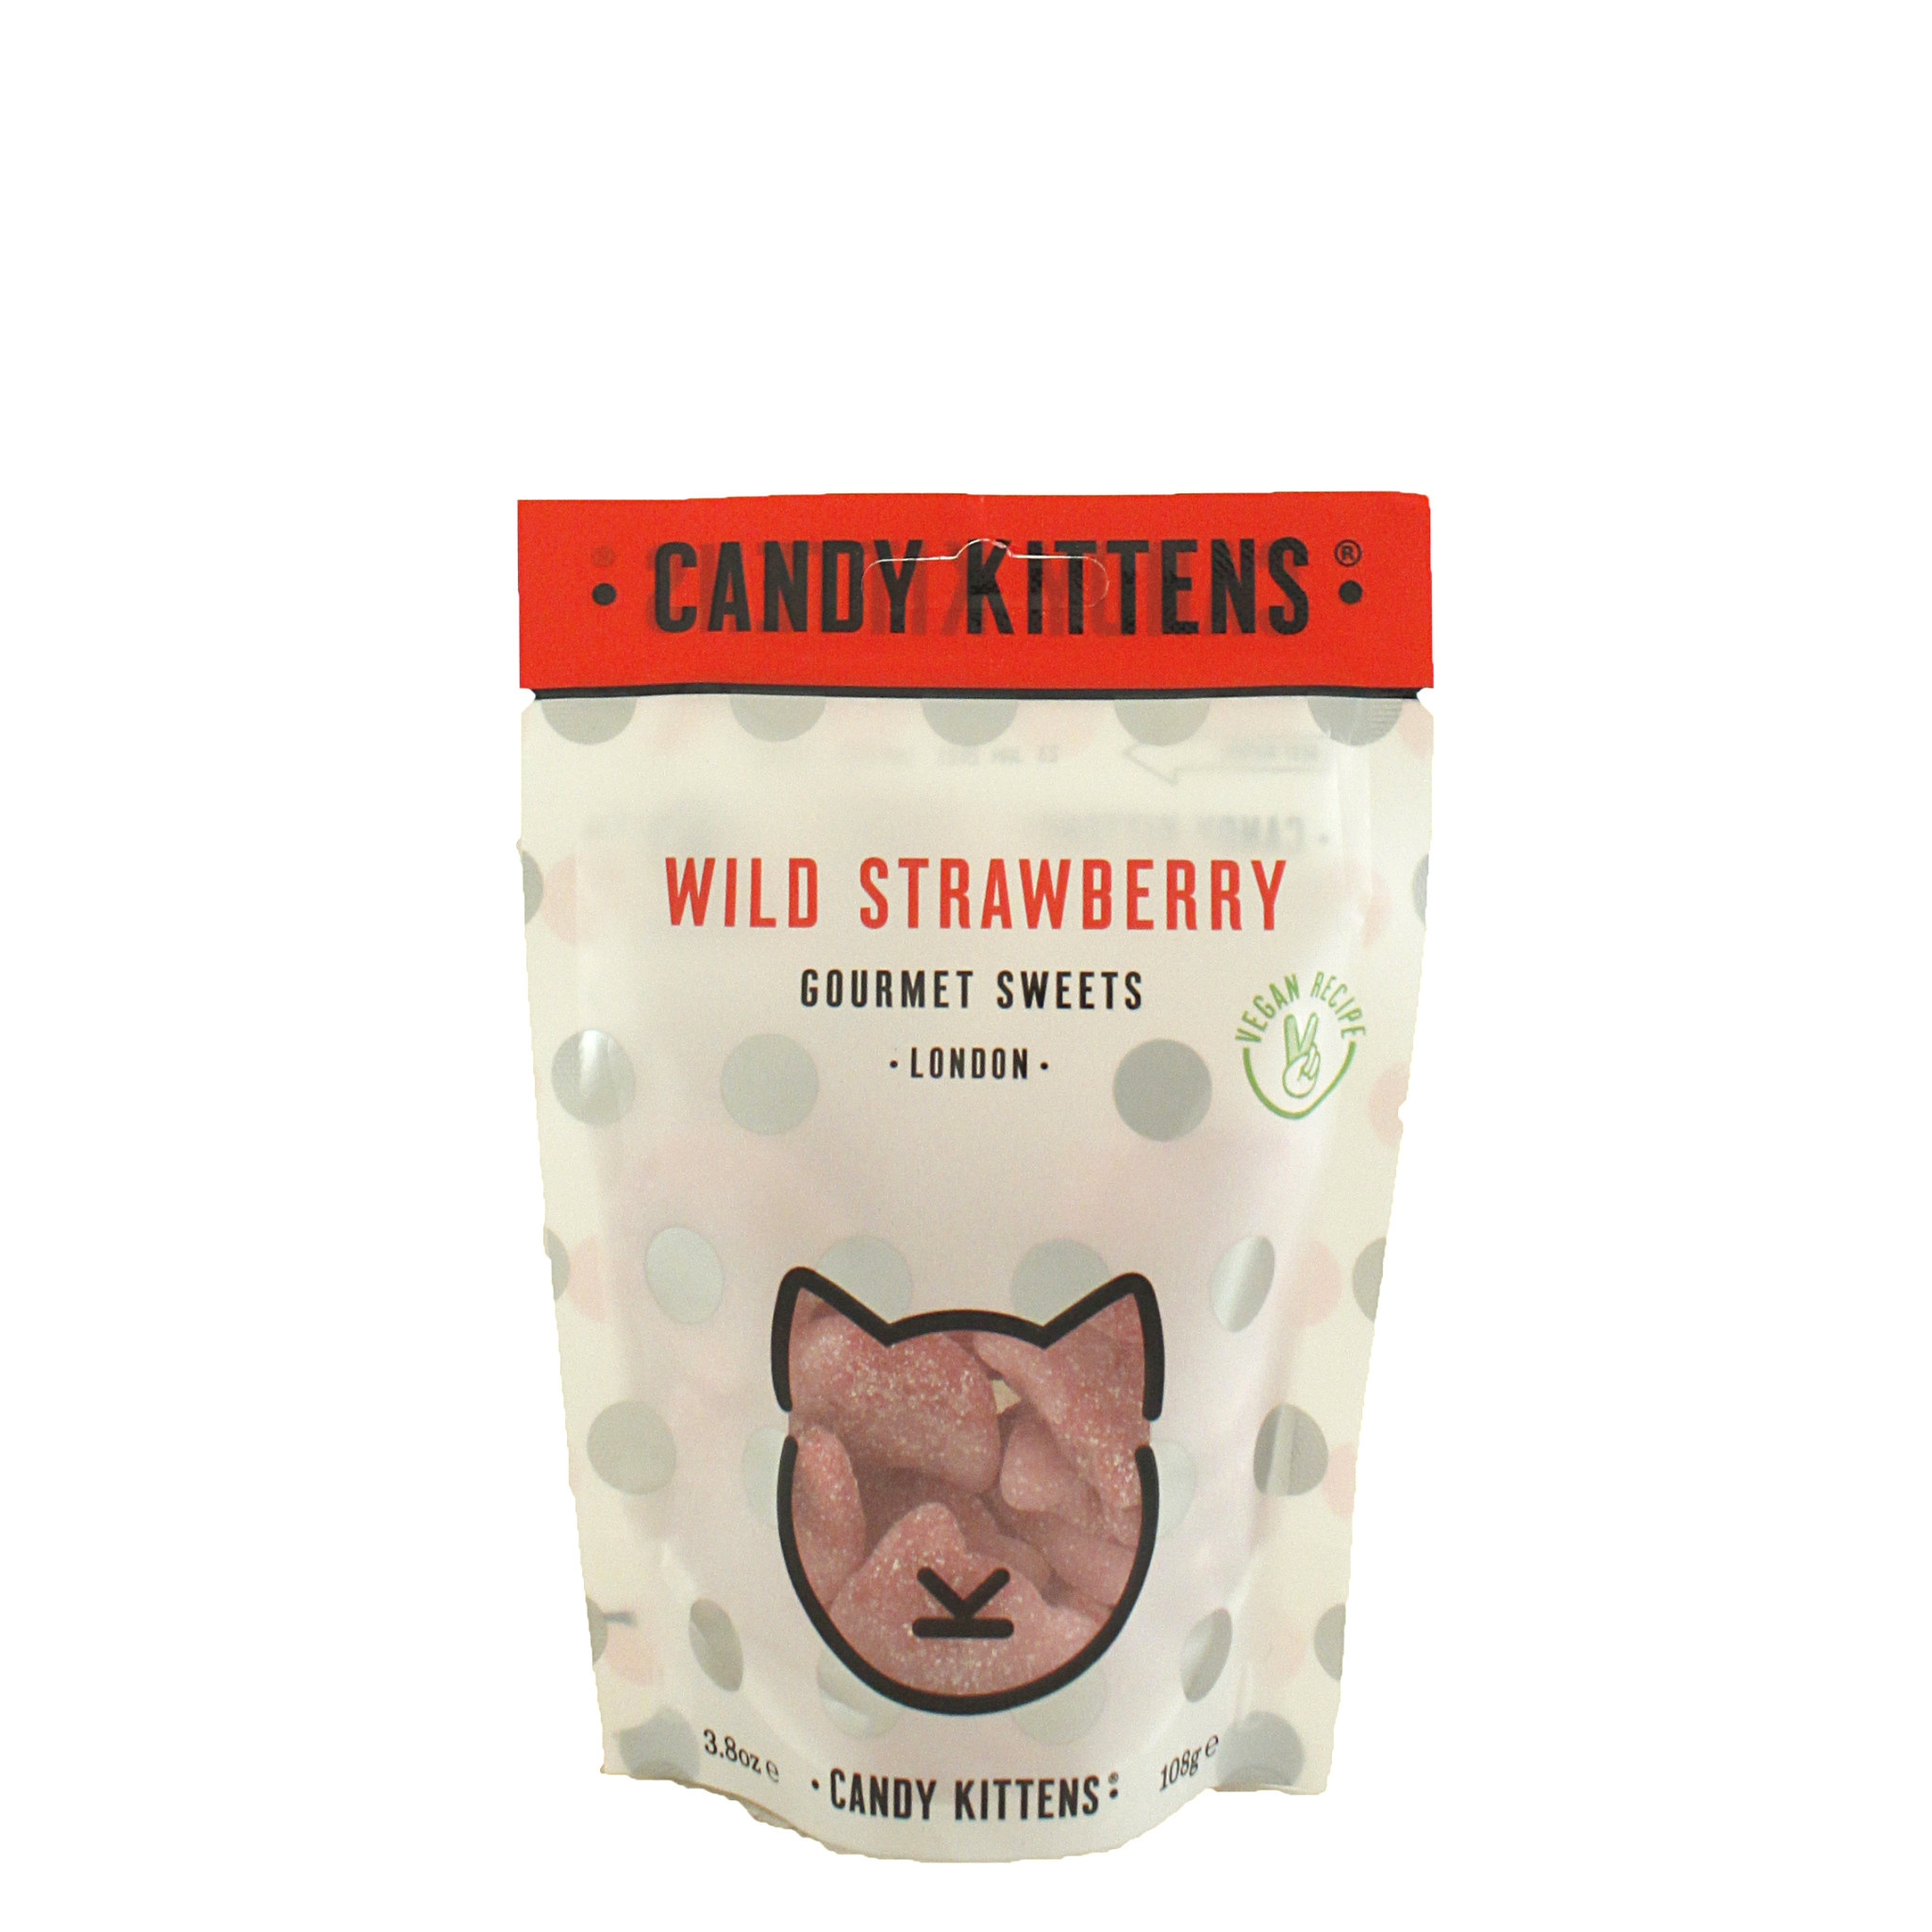 "Candy Kittens ""Wild Strawberry"" Gourmet Gummies 4.4oz, London"